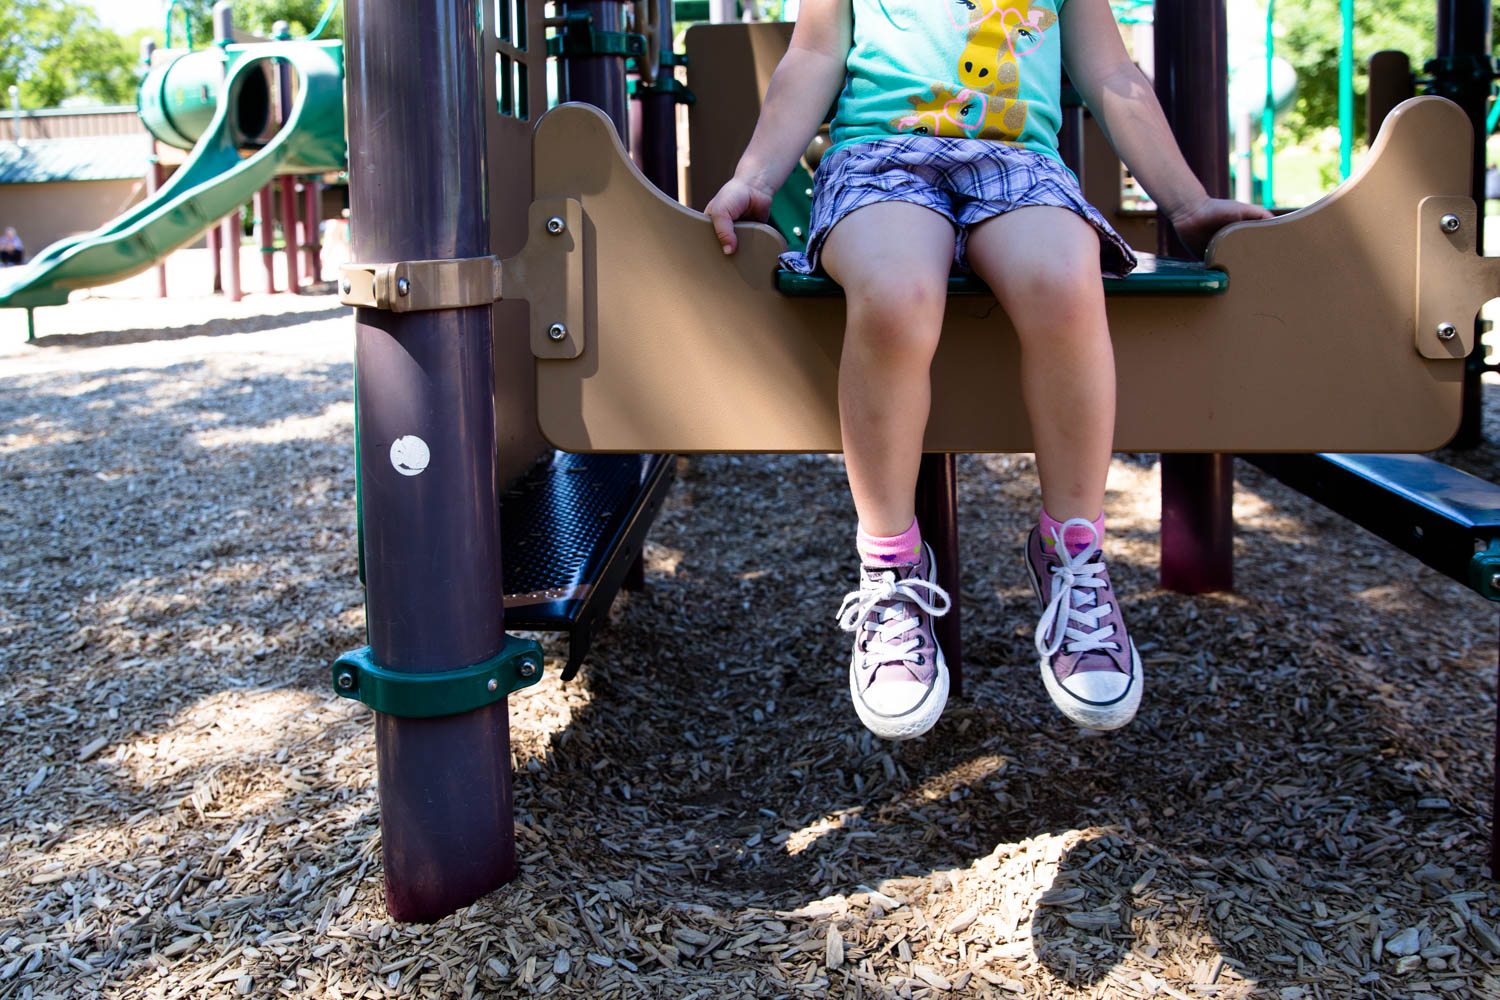 Small child sitting at the playground at camelback park boise Idaho. Hanging feet over the ledge.